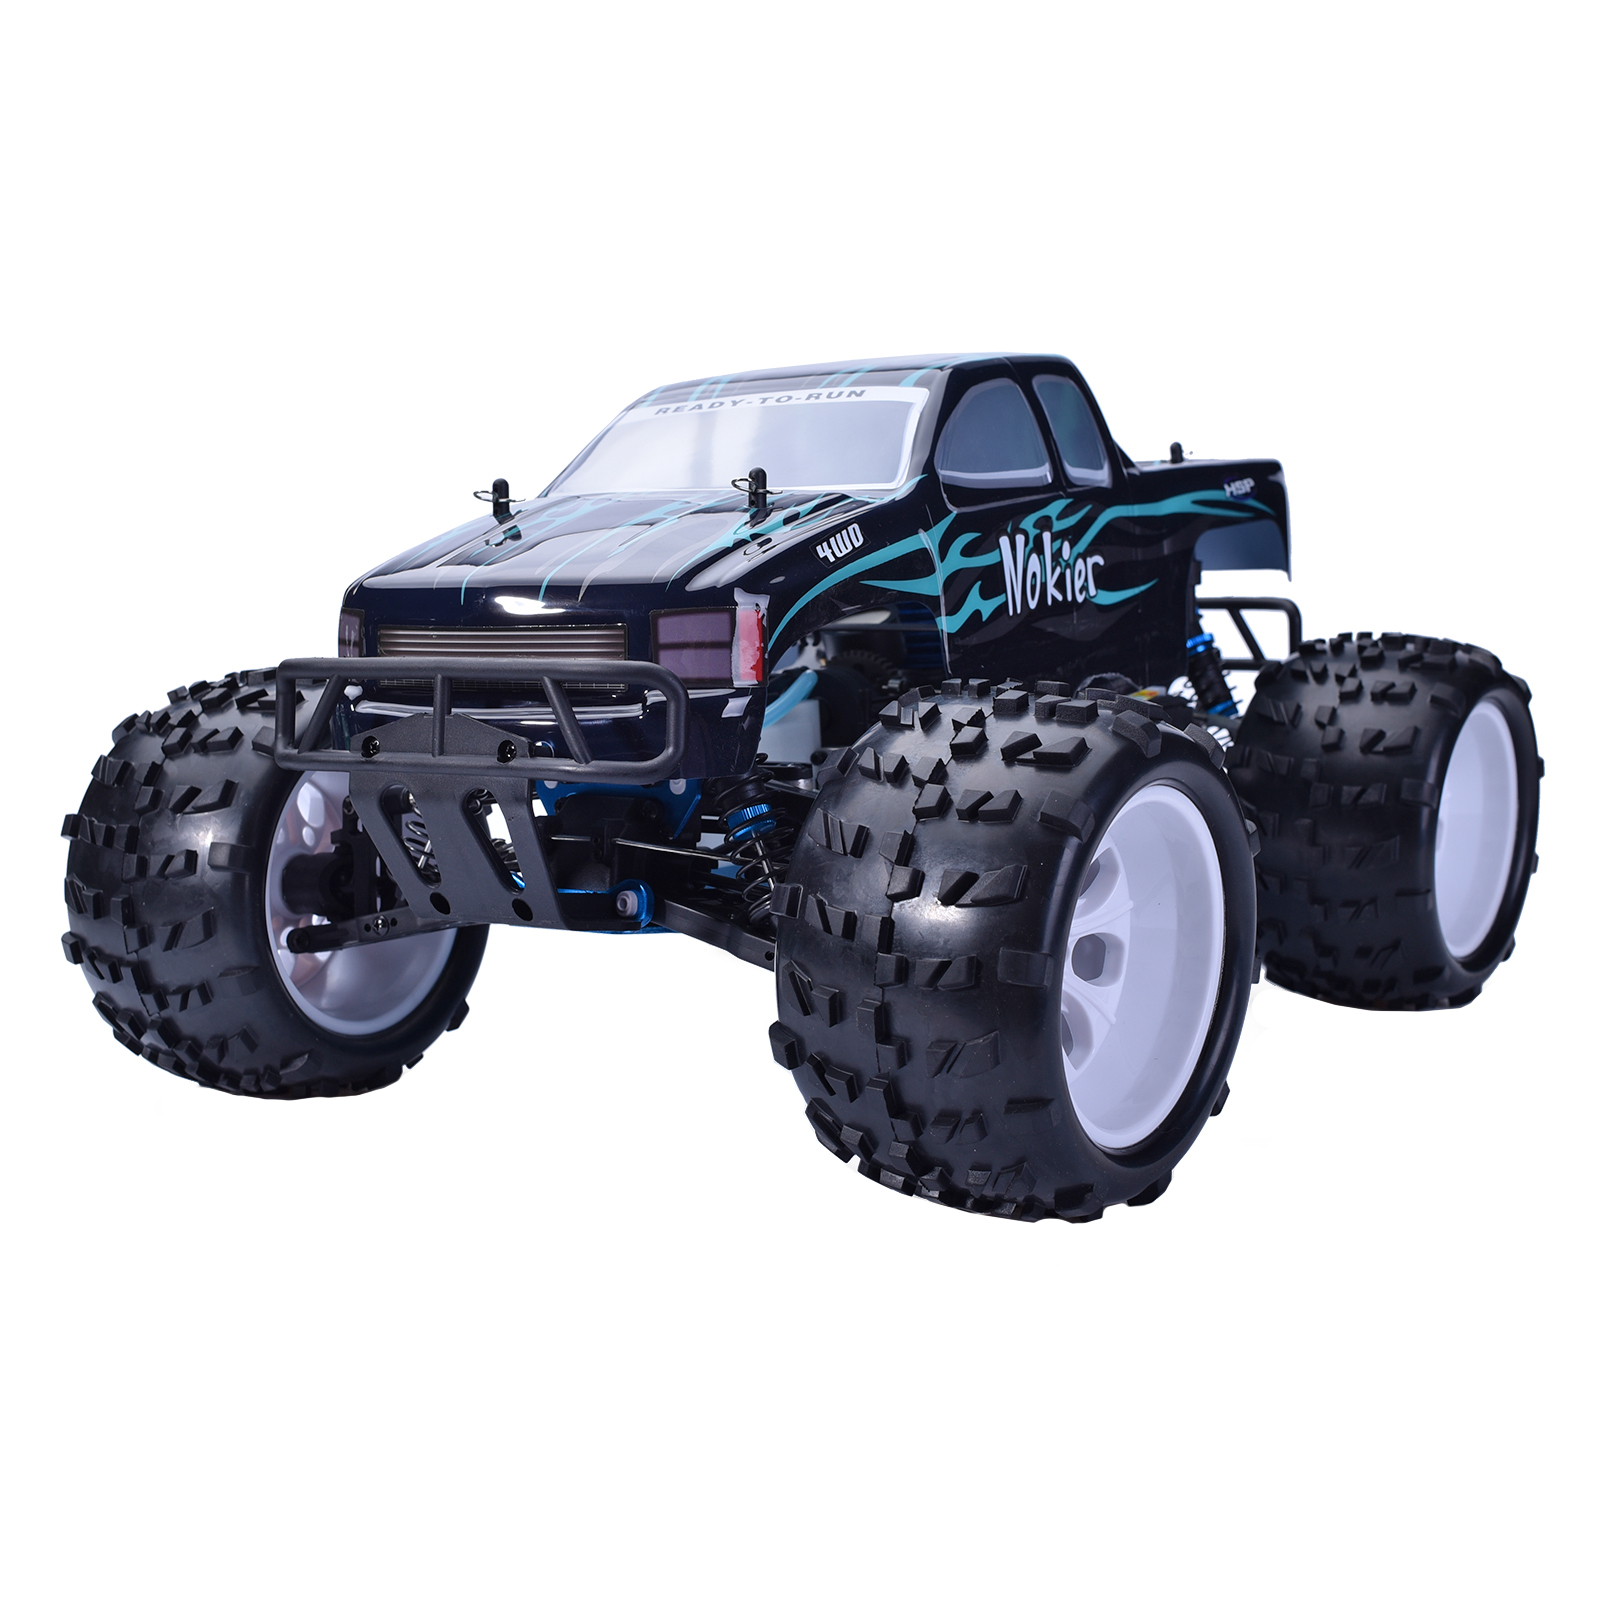 Hsp Rc Truck Nitro Gas Power Off Road Monster Truck 94188: HSP 1/8 RTR 2.4GHz Nitro 2 Speed 4x4 RC Car Off Road